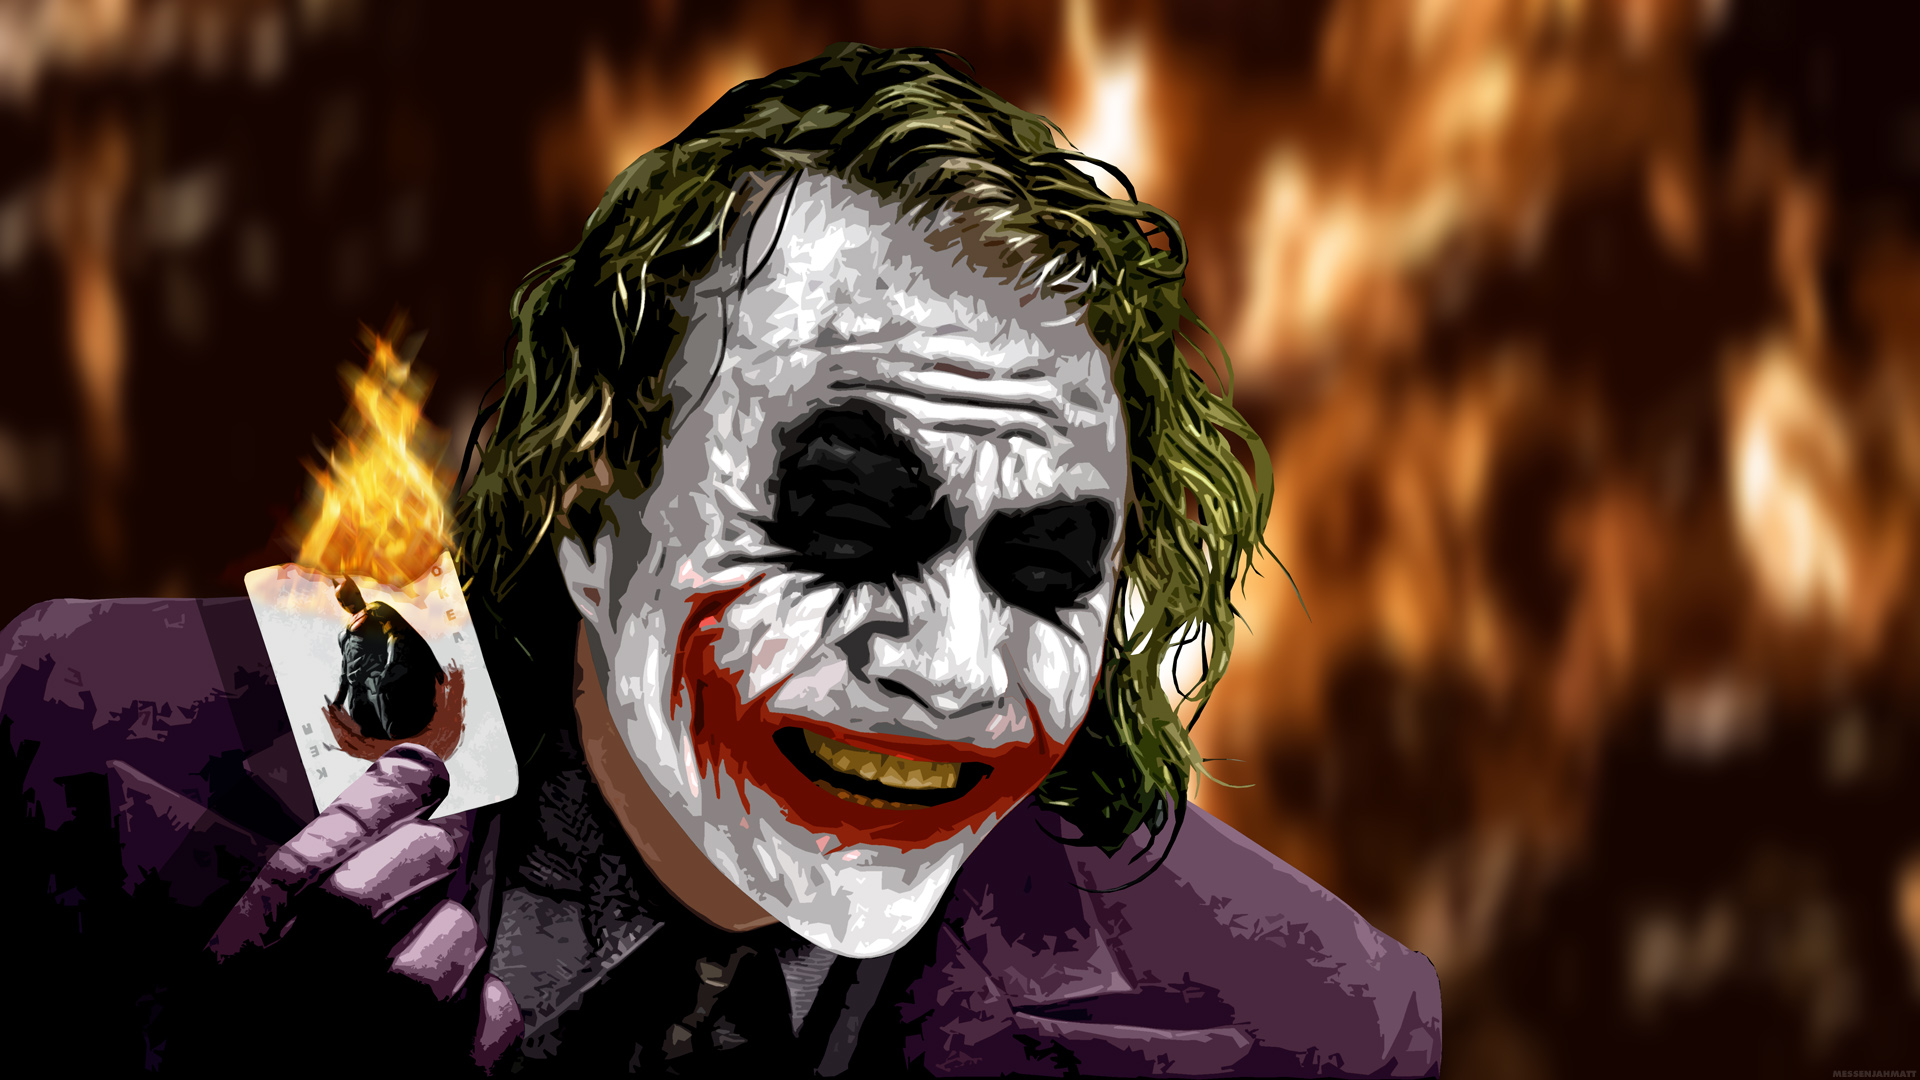 Joker Hd Wallpapers: The Jester's Corner